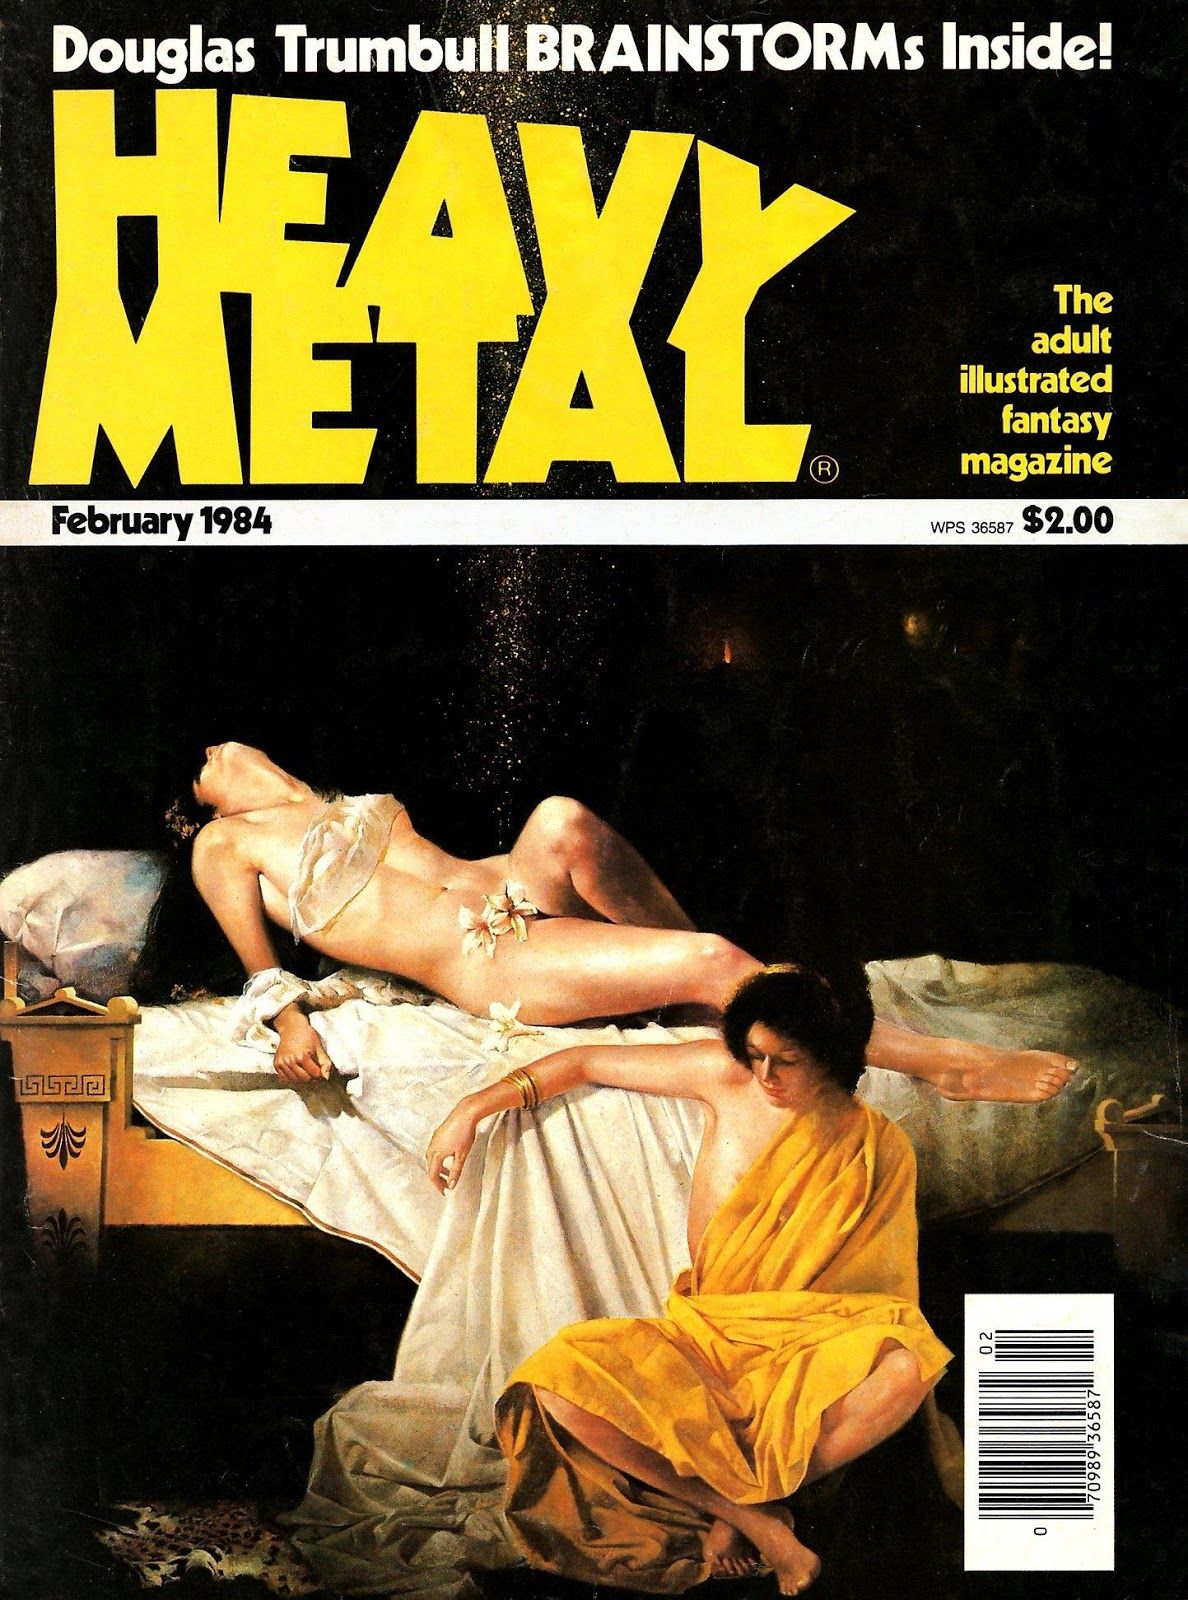 Images: A Fantastic Collection Of Stunning Sci-Fi And Fantasy Based Heavy Metal Comic Book Covers From 1983 And 1984